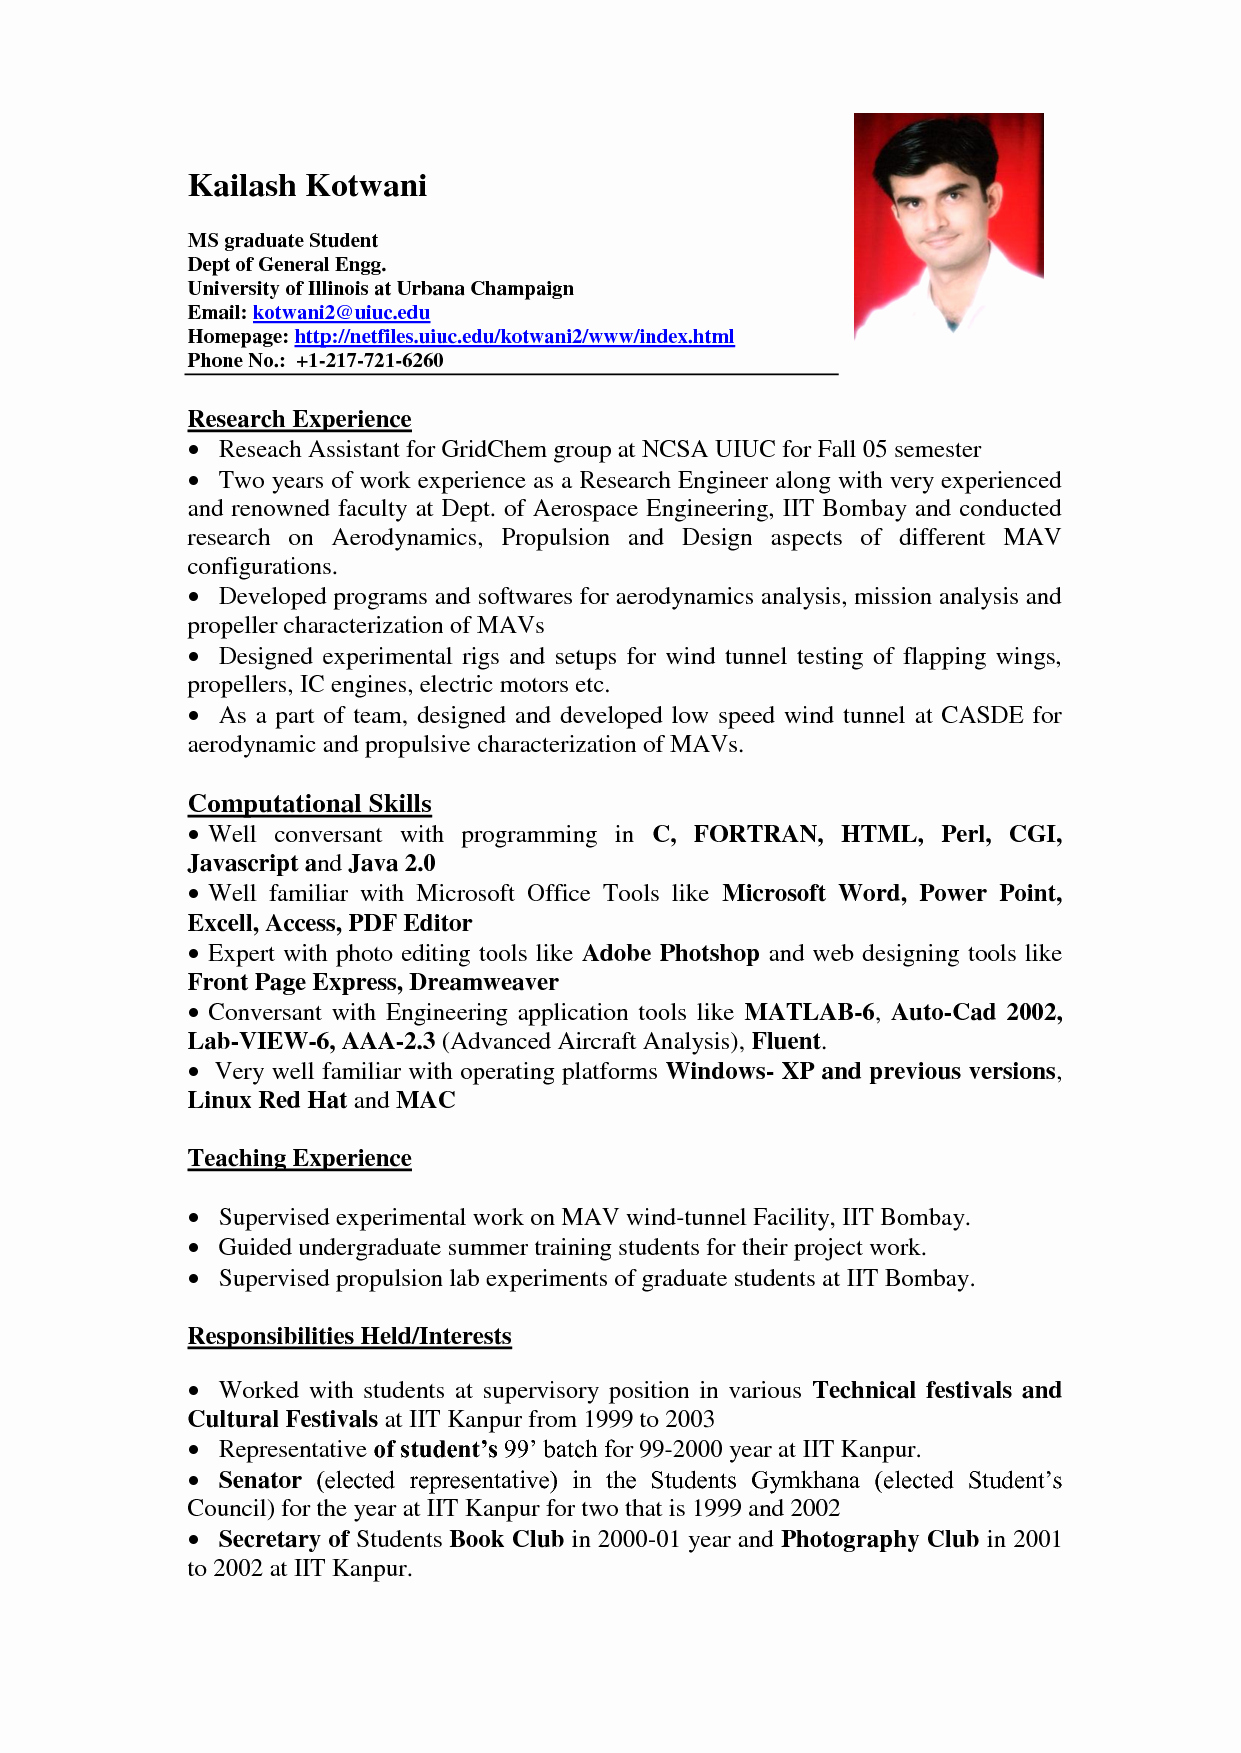 Resume Samples for College Student Best Of 11 Student Resume Samples No Experience Michi